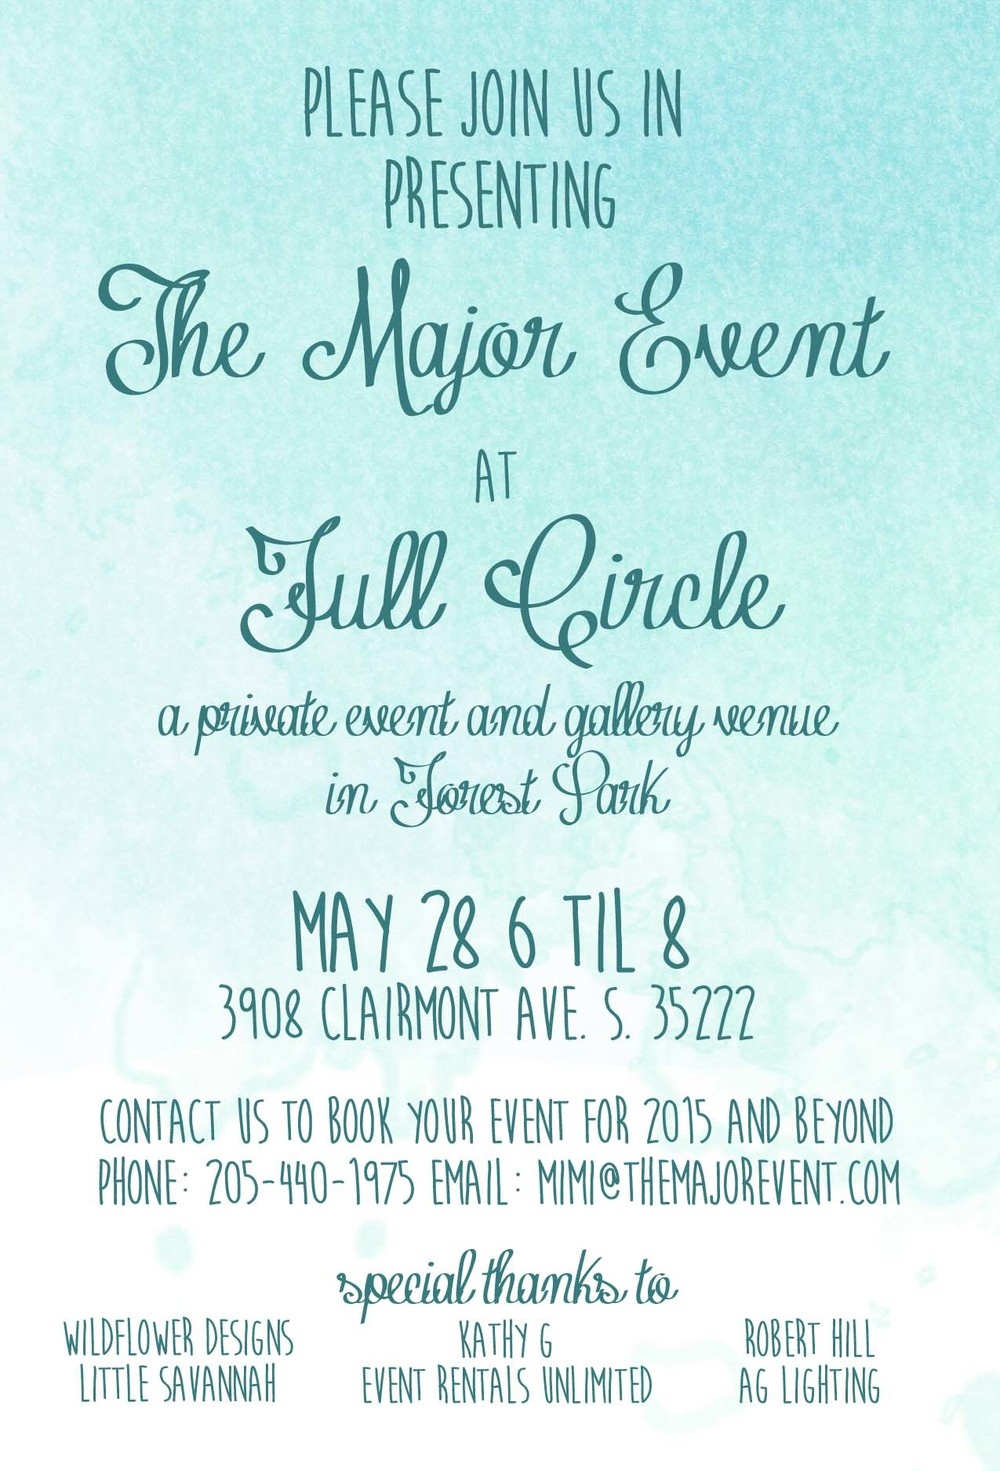 Full Circle is teaming up with The Major Event to bring you a new Birmingham event space! We are so excited to offer this space for wedding events, corporate meetings, charity luncheons or fundraisers, birthday parties, book signings, gallery space, pop-up shops, workshops and more! We hope you and your friends will join us this Thursday to celebrate and view the space.